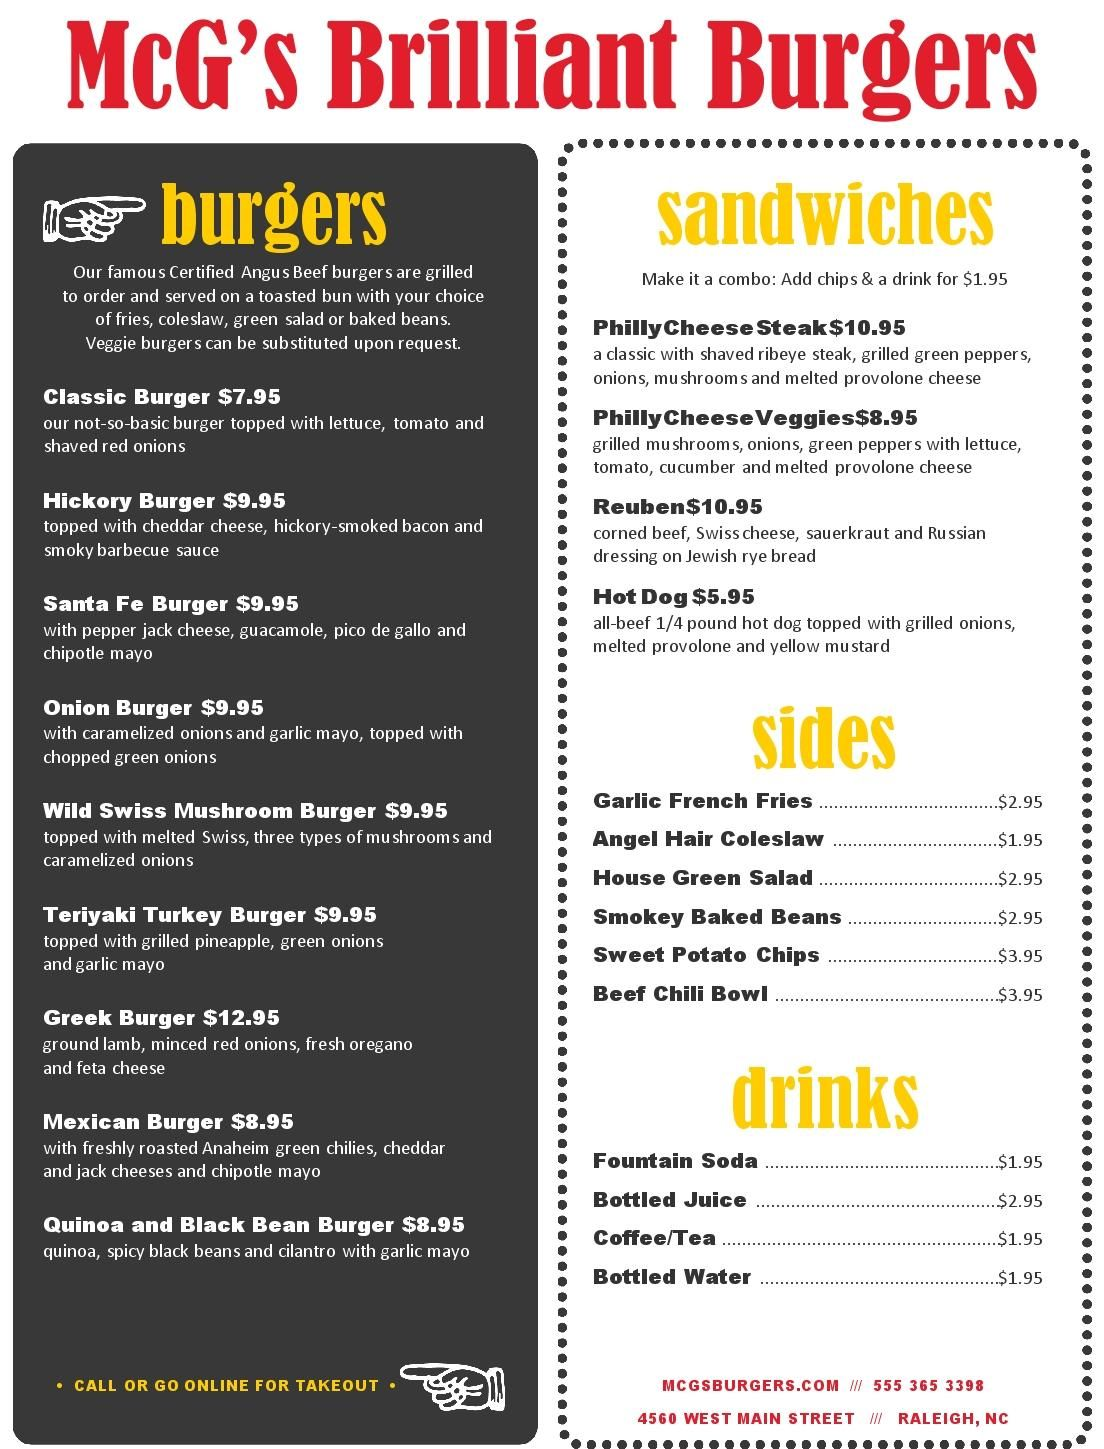 Attrayant Backyard Burger Menu   MustHaveMenus